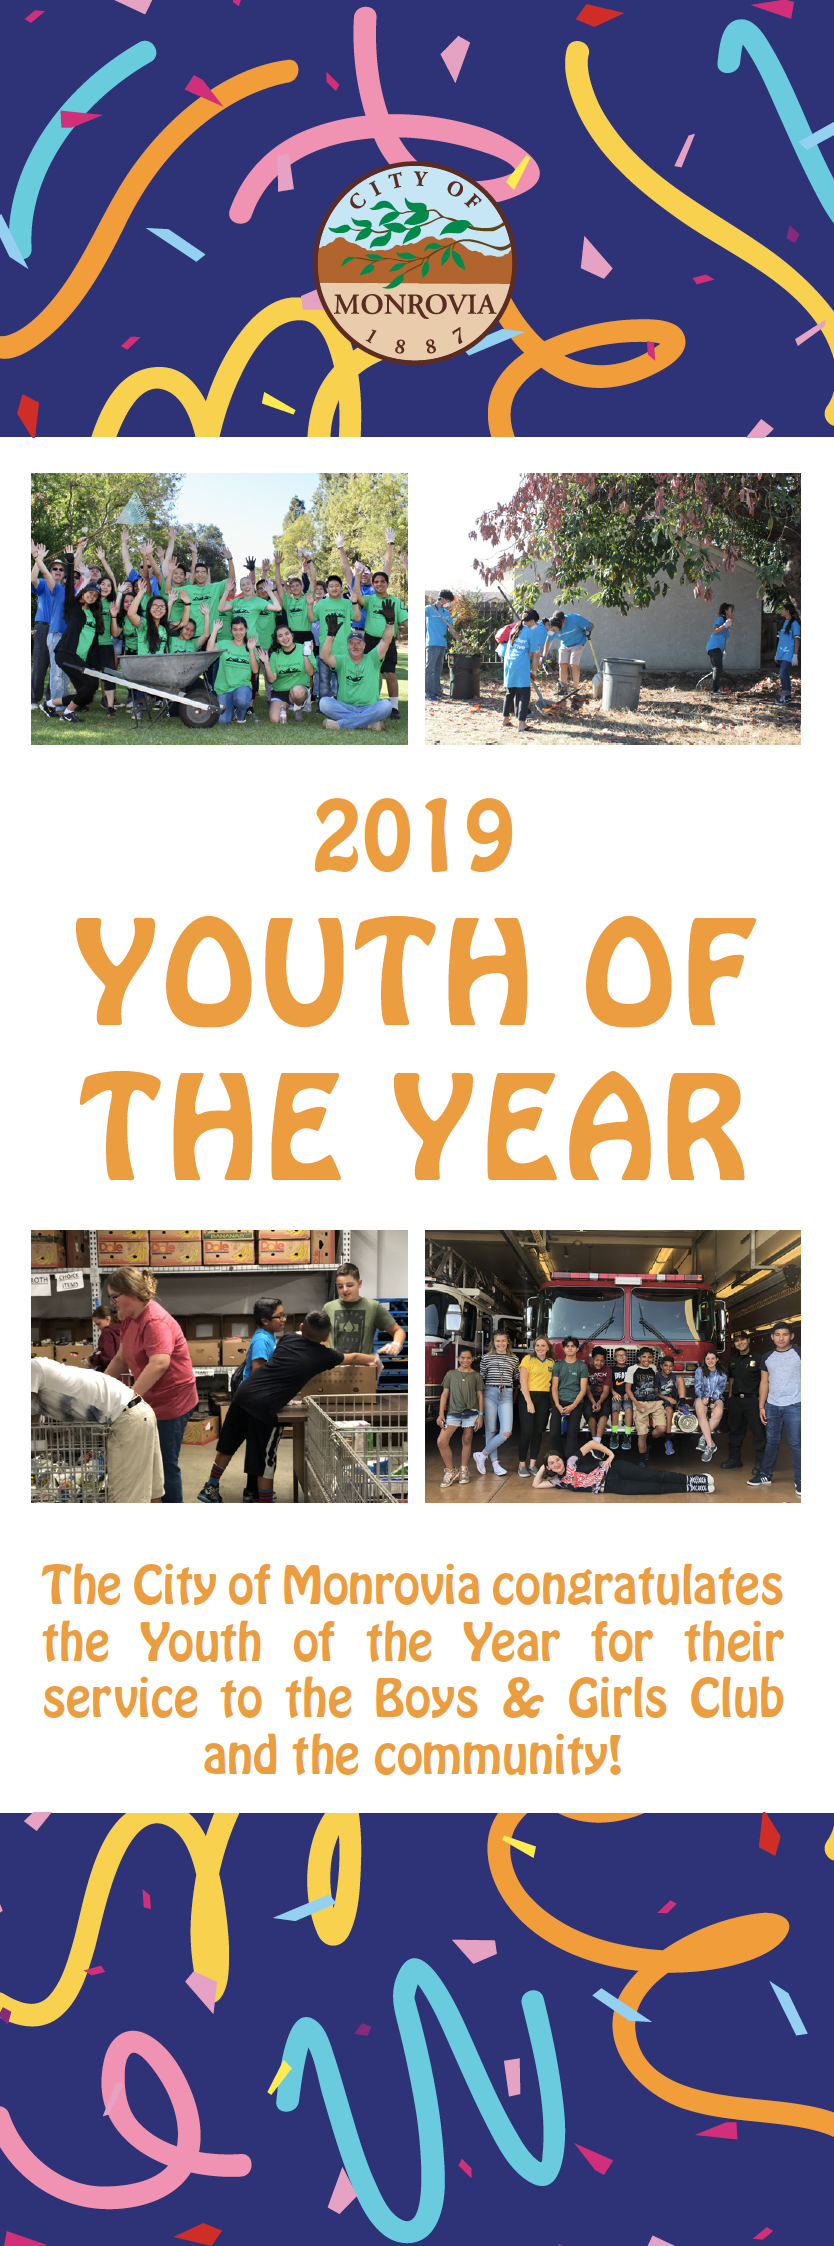 2019 Youth of the Year